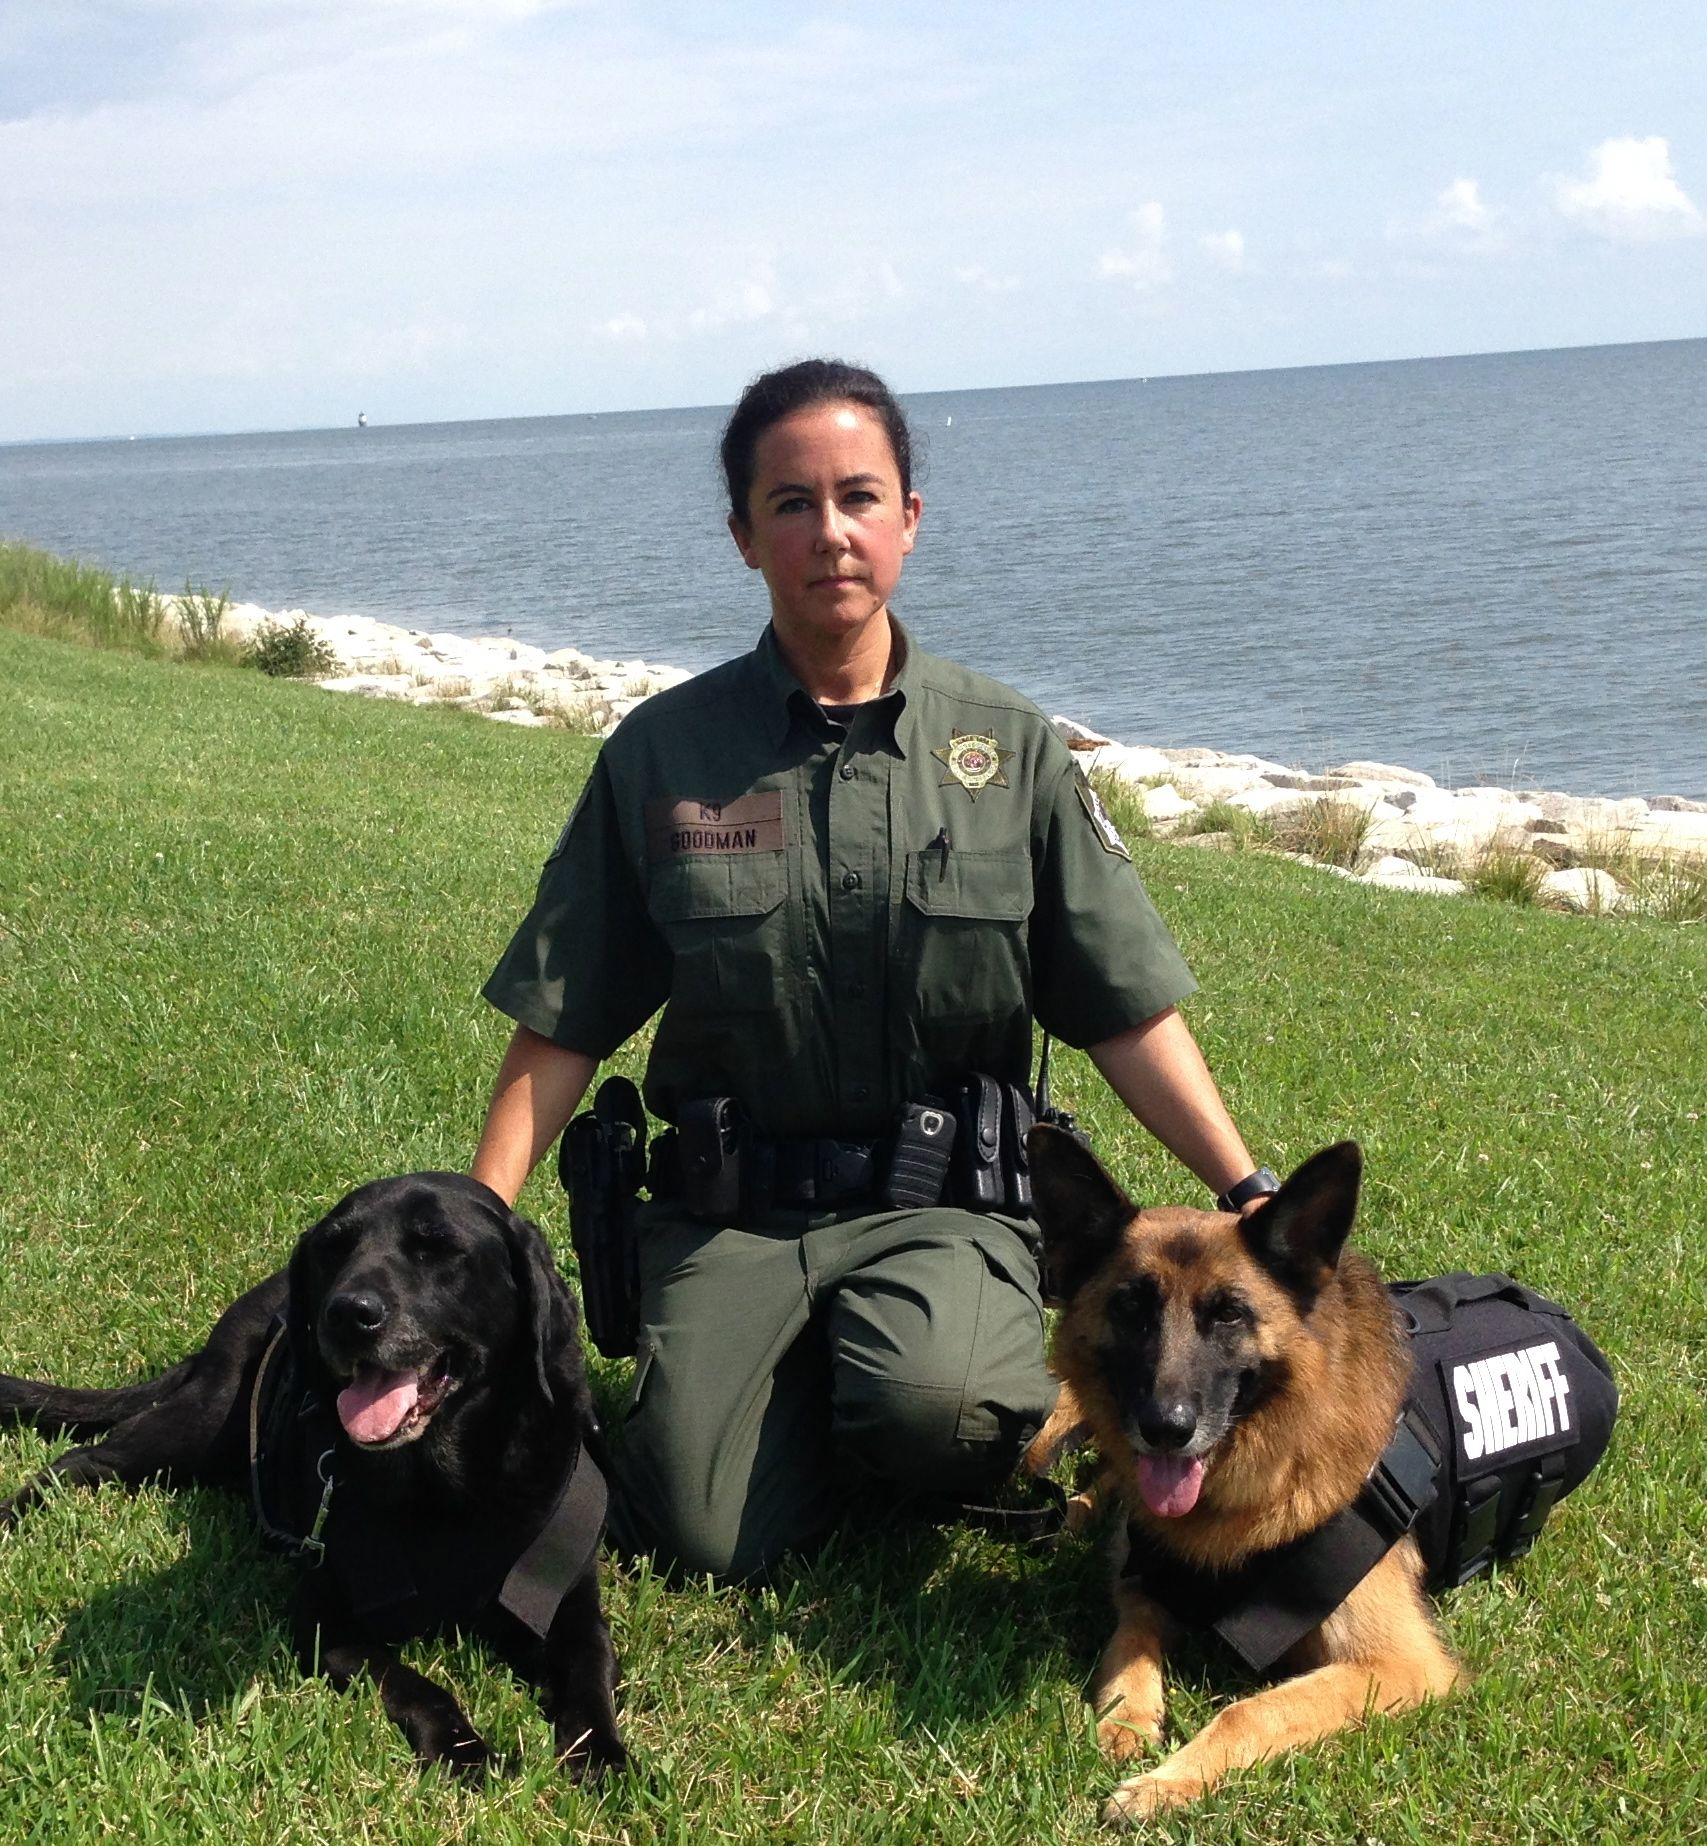 K9 Rocky and K9 Calypso, handled by Lcp. Michele Goodman are trained in Explosive Detection.